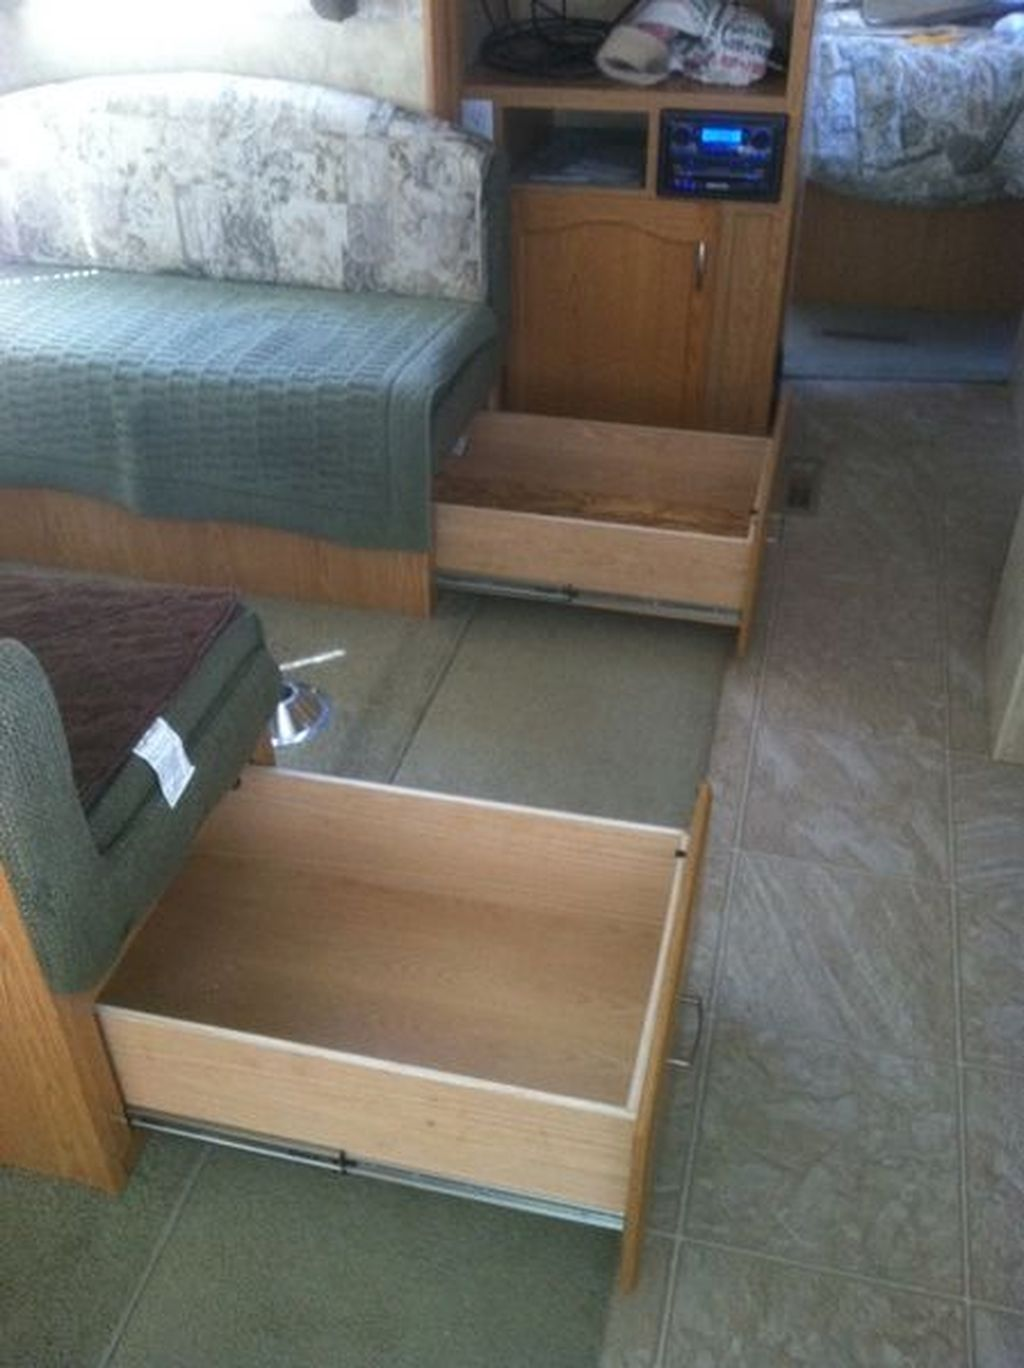 Inspiring RV Storage Ideas Travel Trailers 06